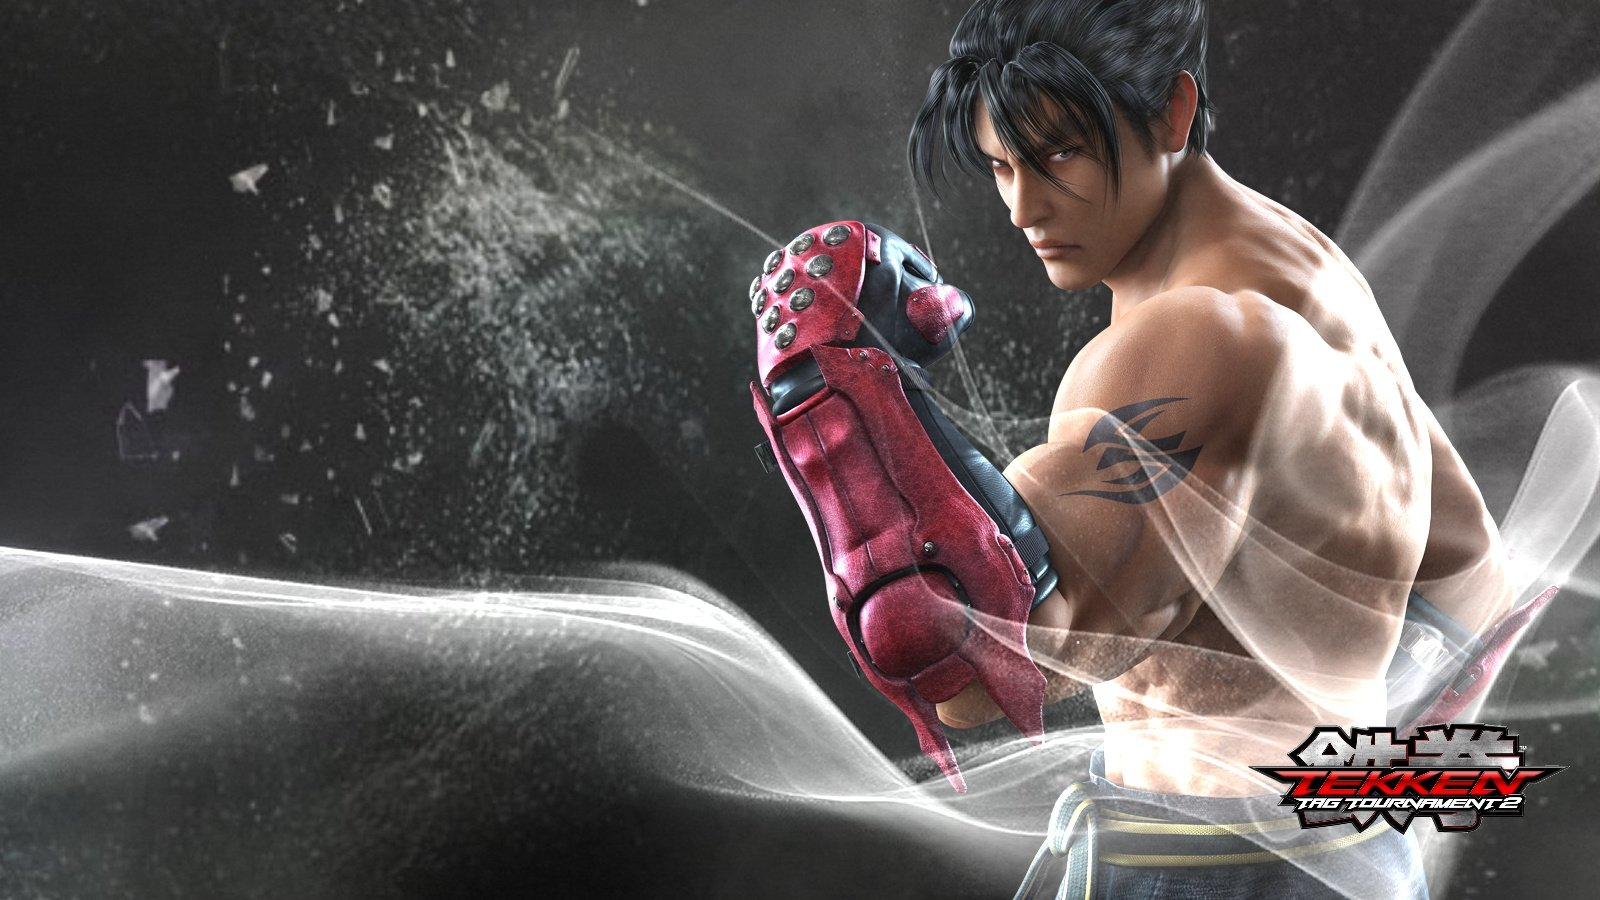 tekken 3 jin kazama hd wallpaper